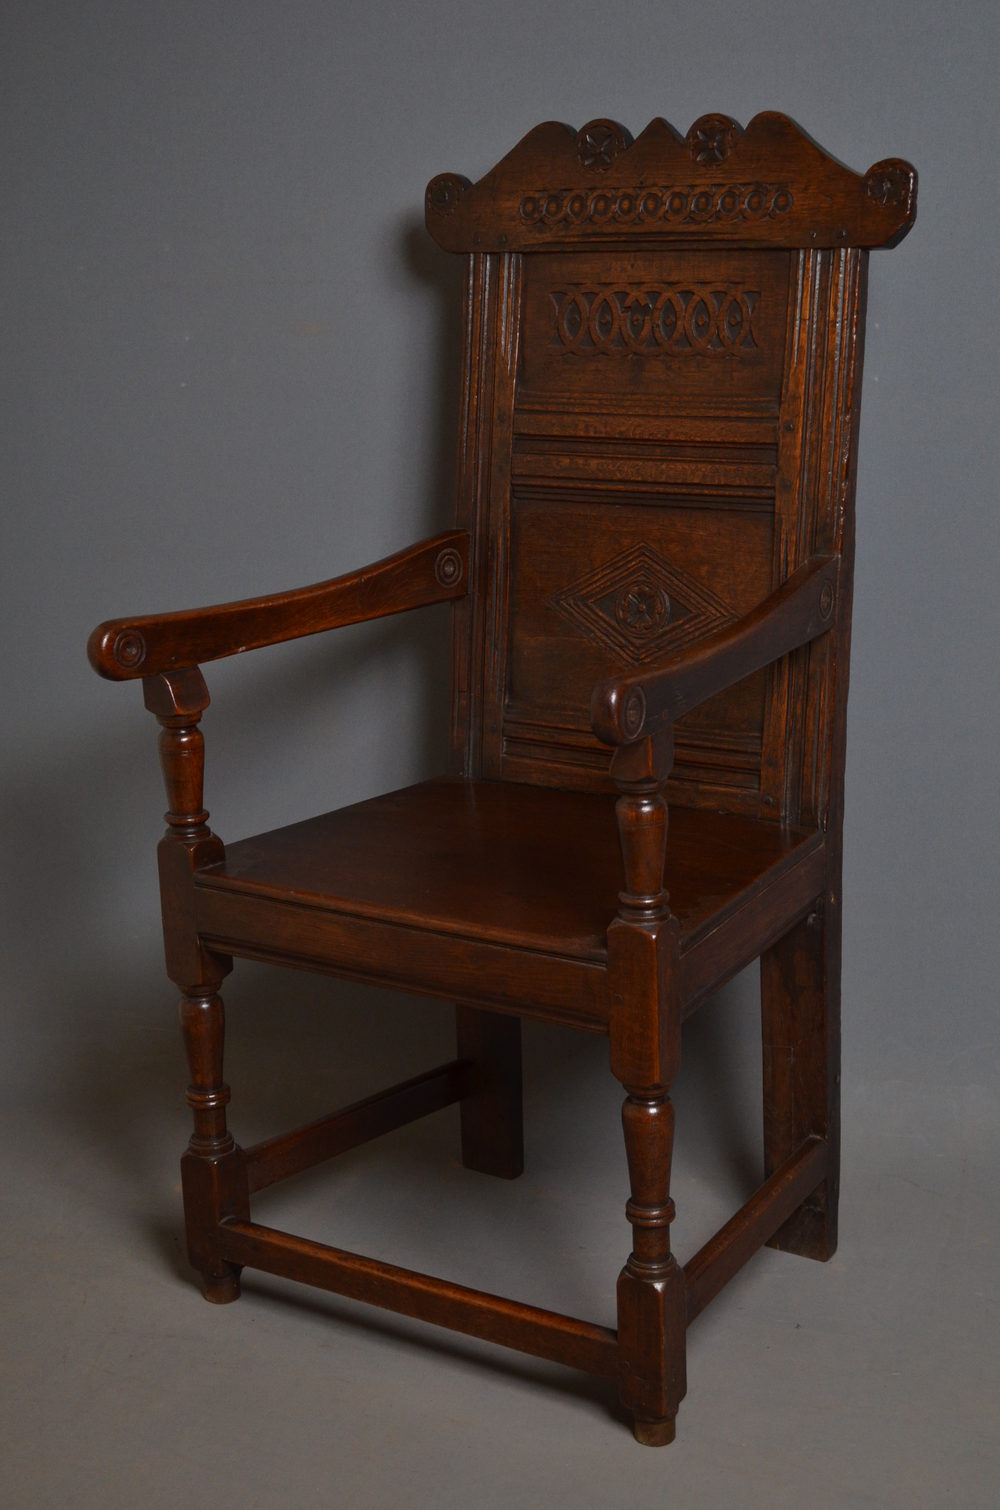 Wainscot Chair Antique Wainscot Chairs